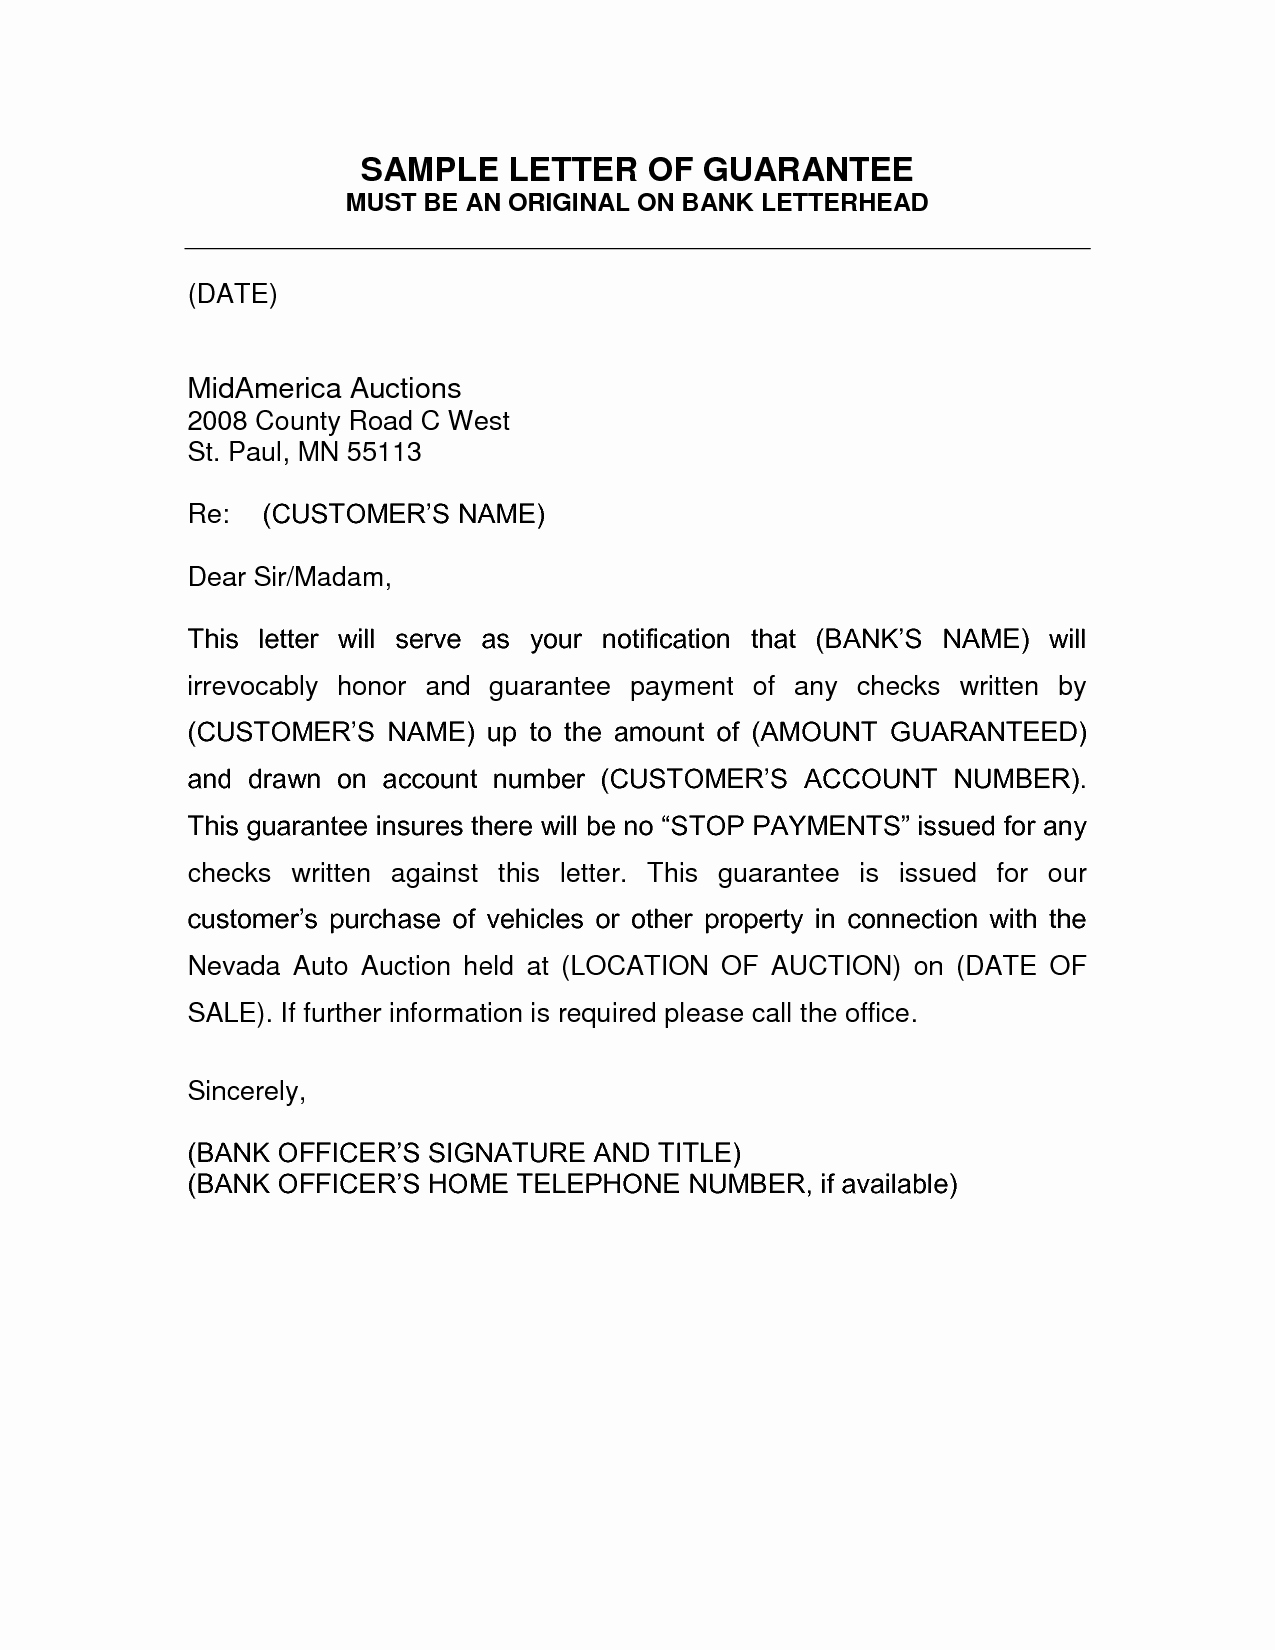 Letter Of Guarantee Template Fresh Letter Of Guarantee Template Auto Title – Aktin